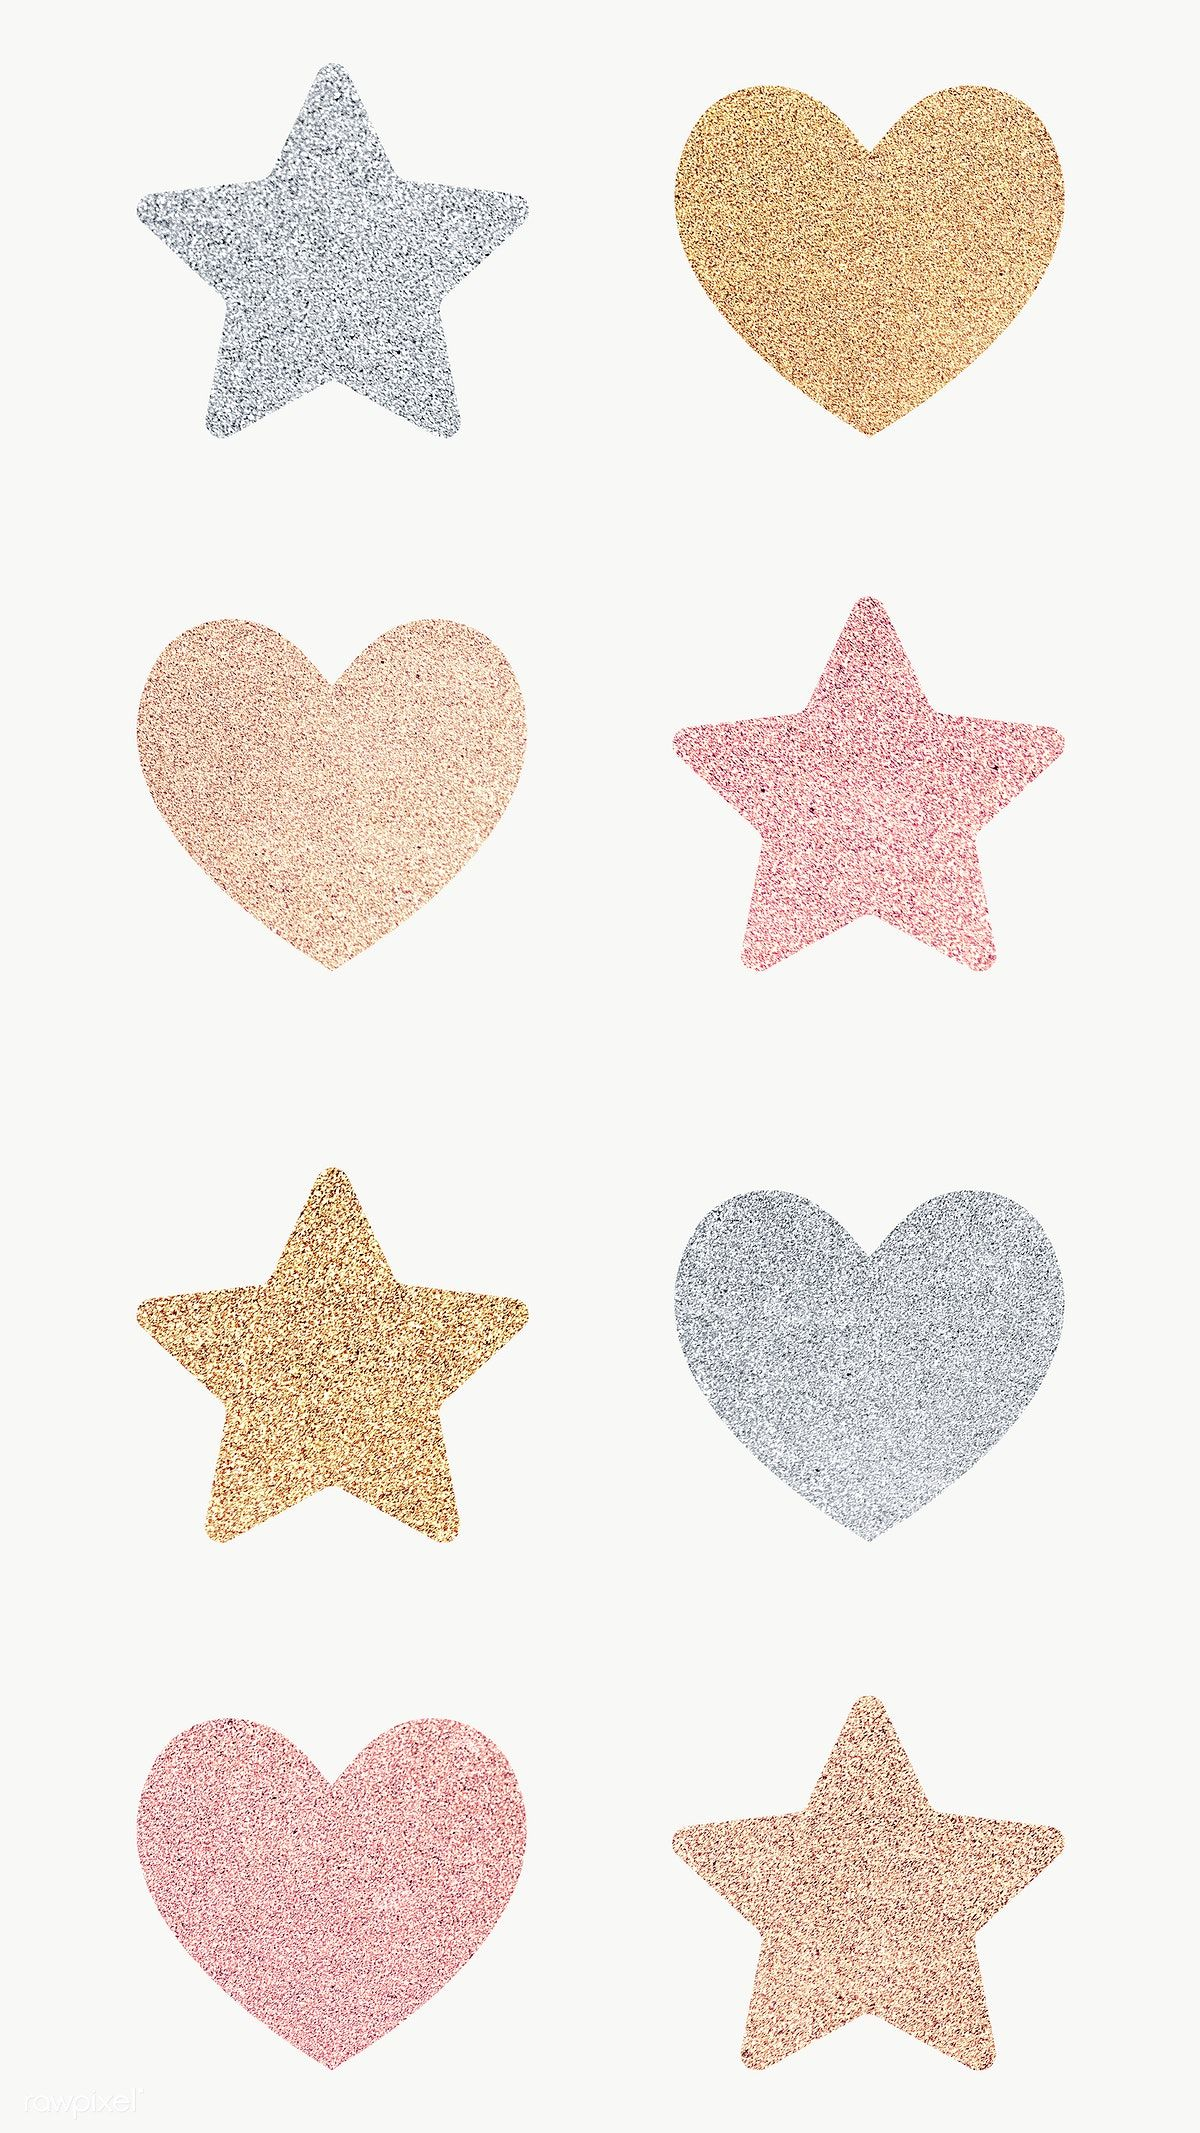 Glitter Heart And Star Sticker Set Transparent Png Free Image By Rawpixel Com Ningzk V Glitter Hearts Glitter Stickers Star Stickers